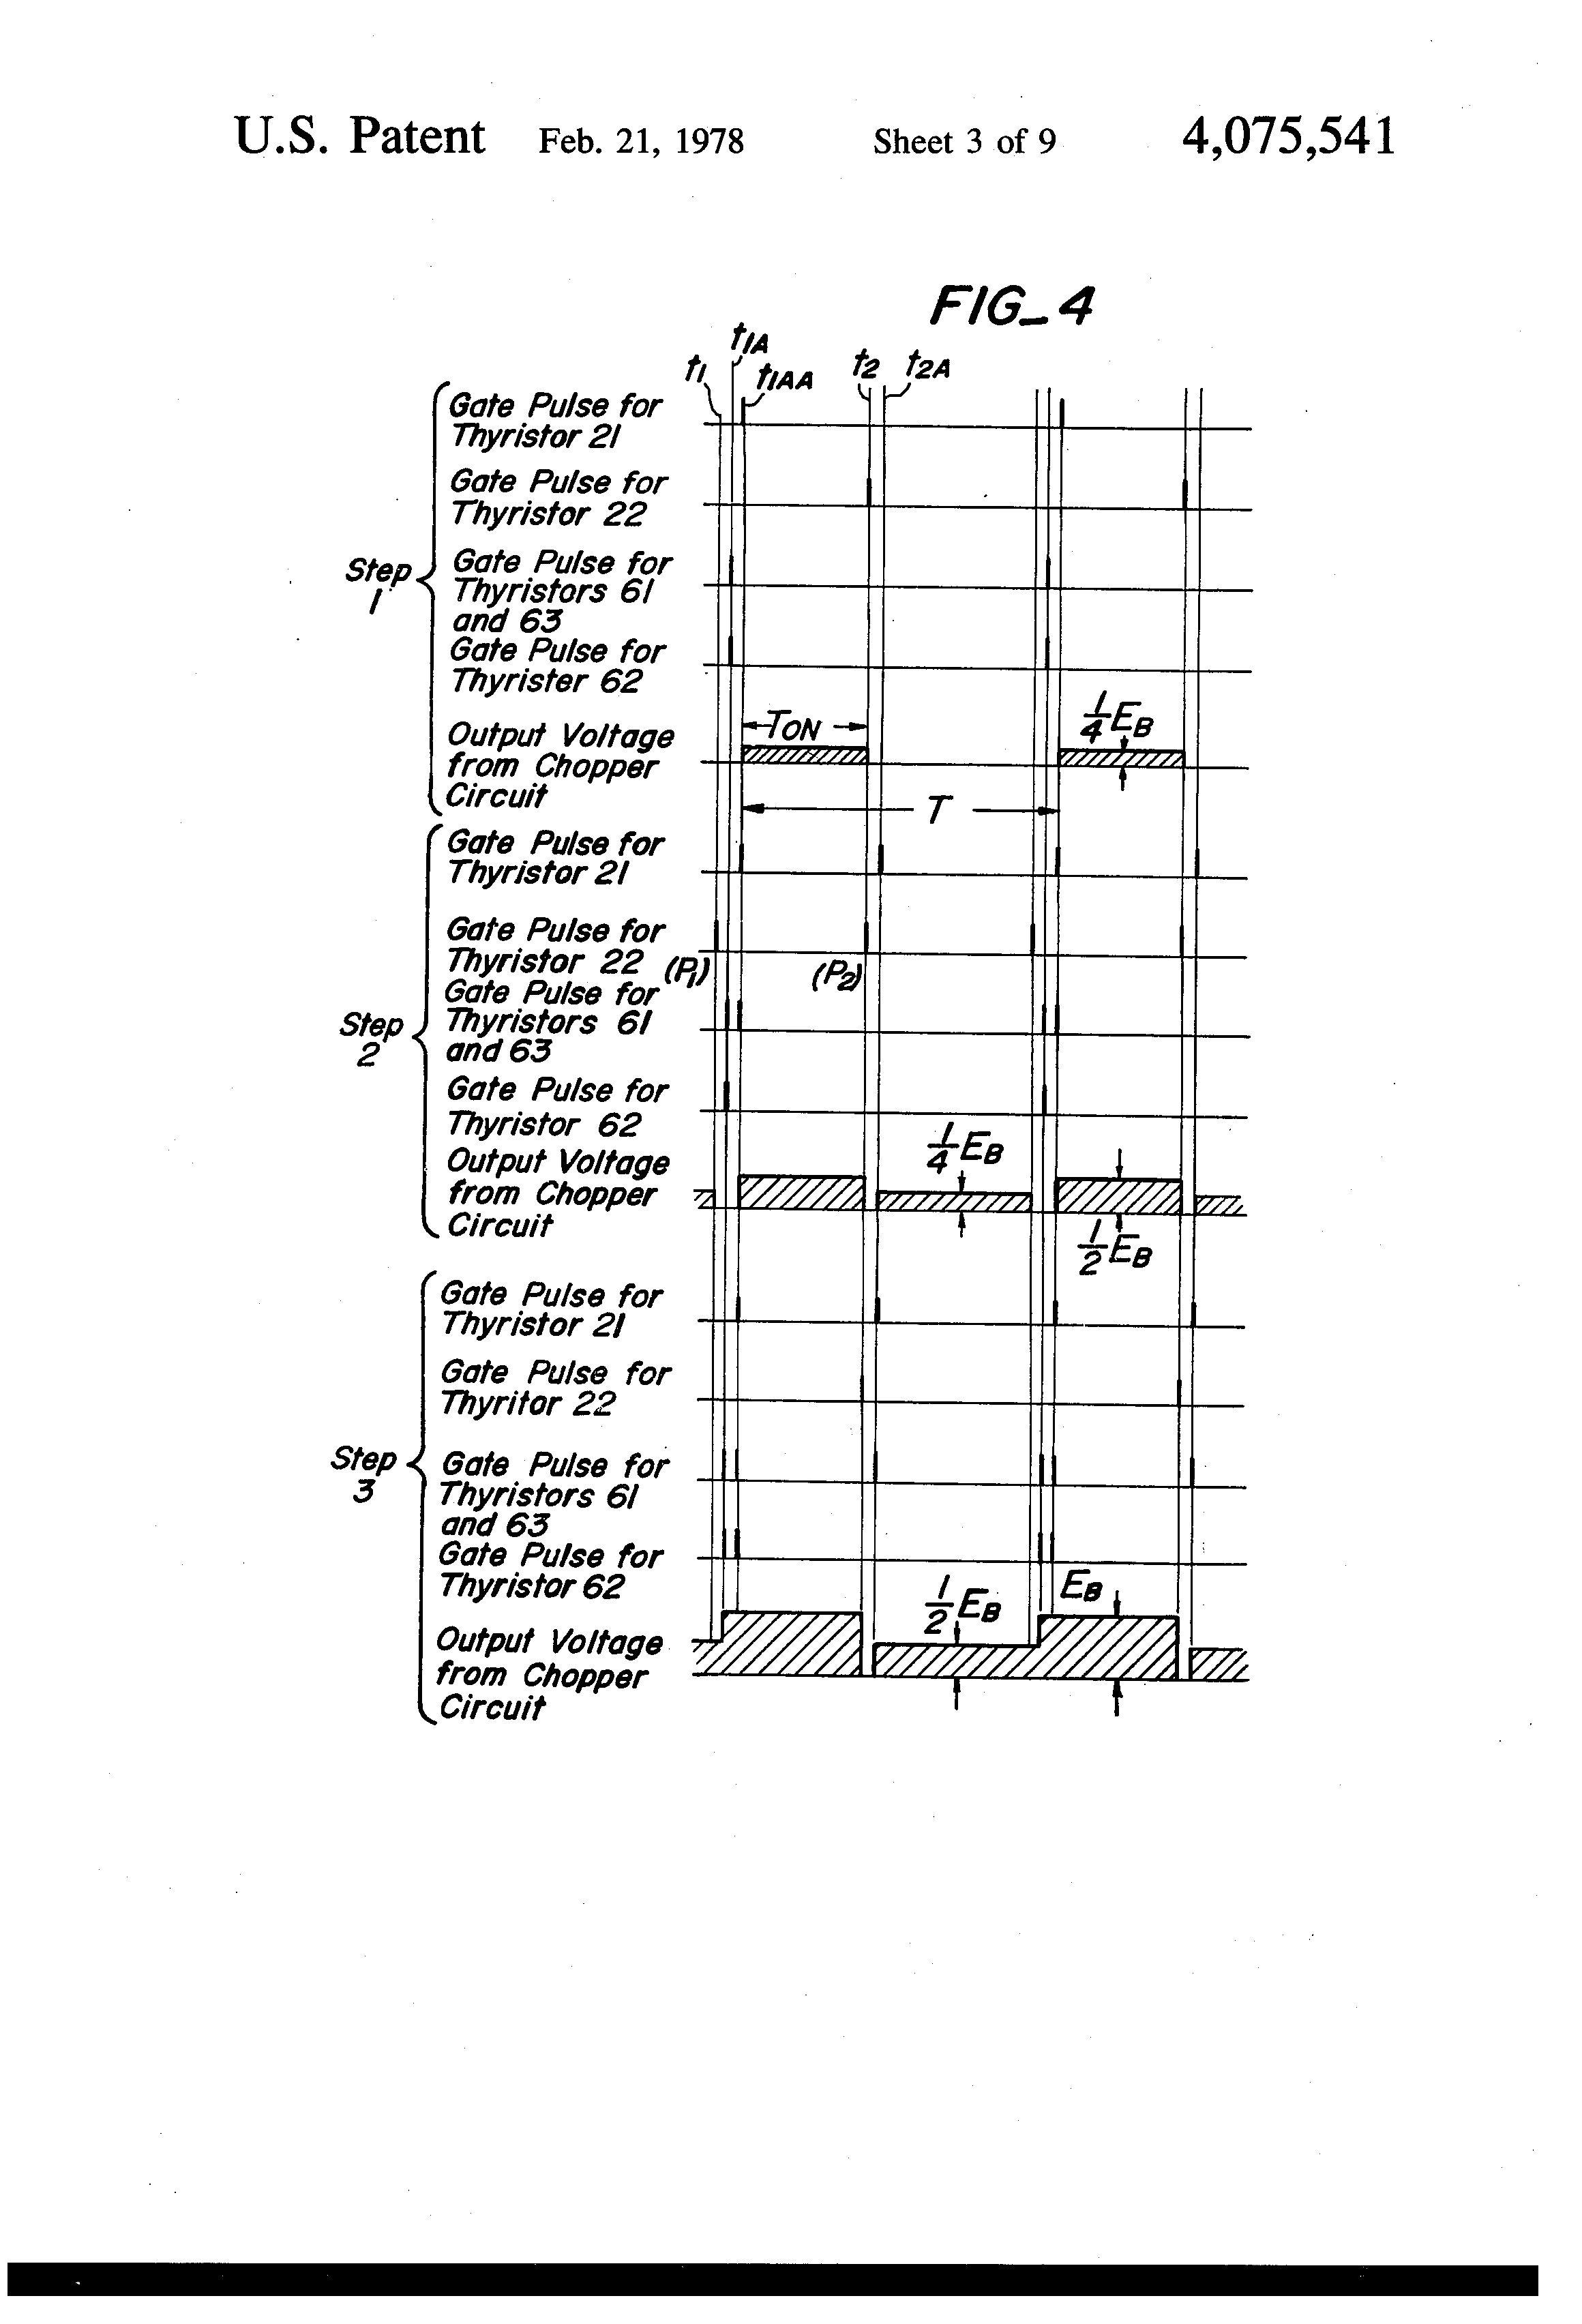 Brevet Us4075541 Direct Current Motor Control Device For Use In Thyristors Patent Drawing